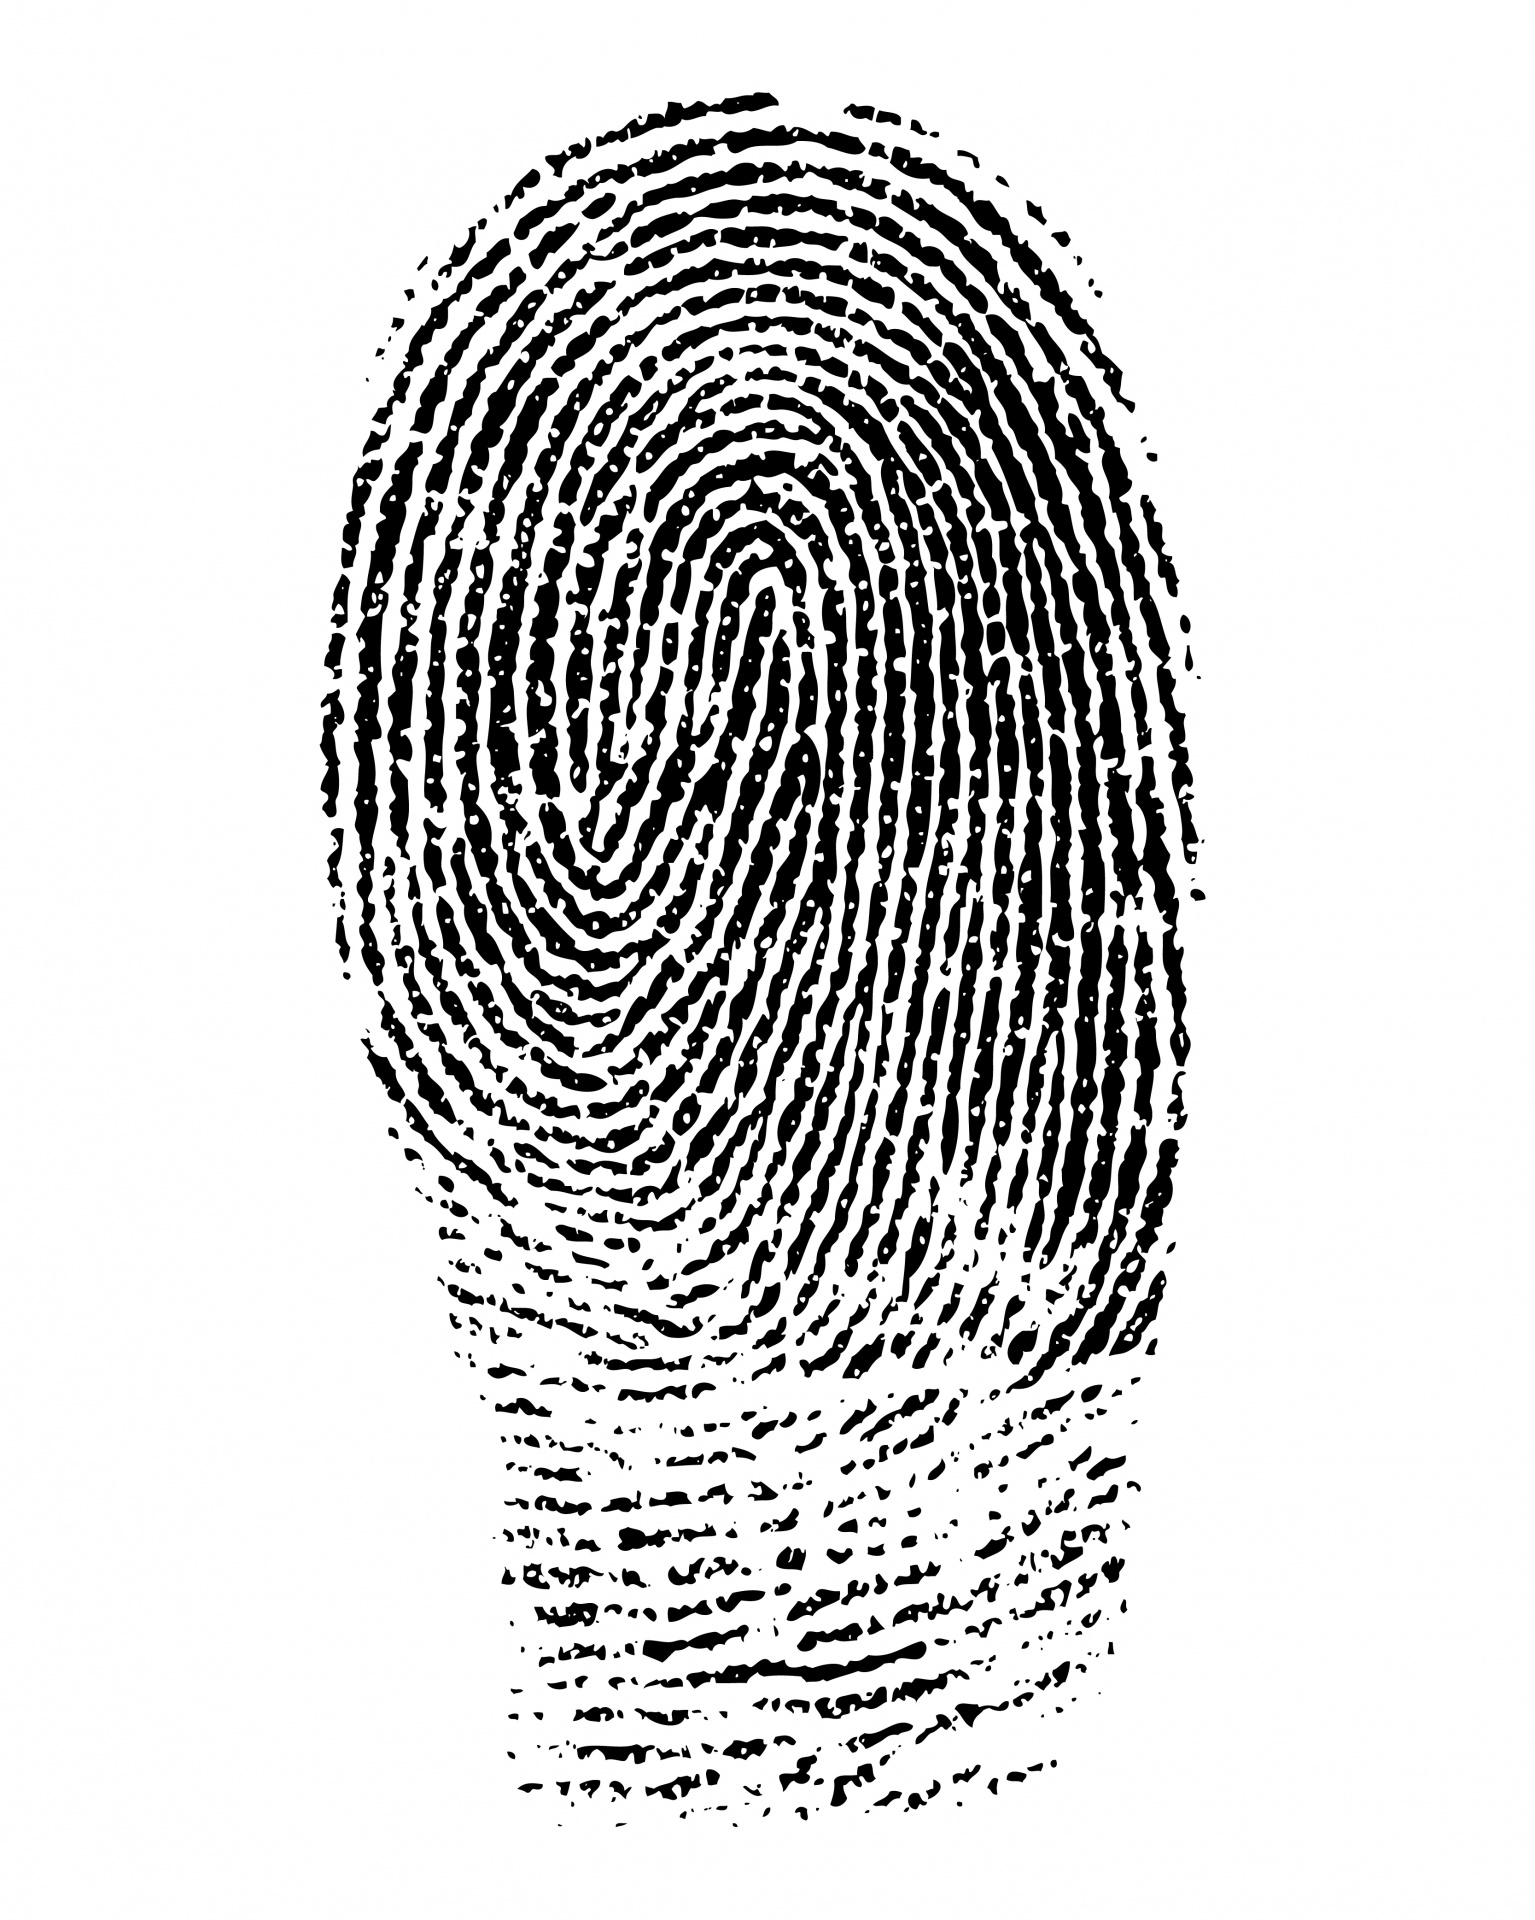 Free stock photo public. Fingerprint clipart